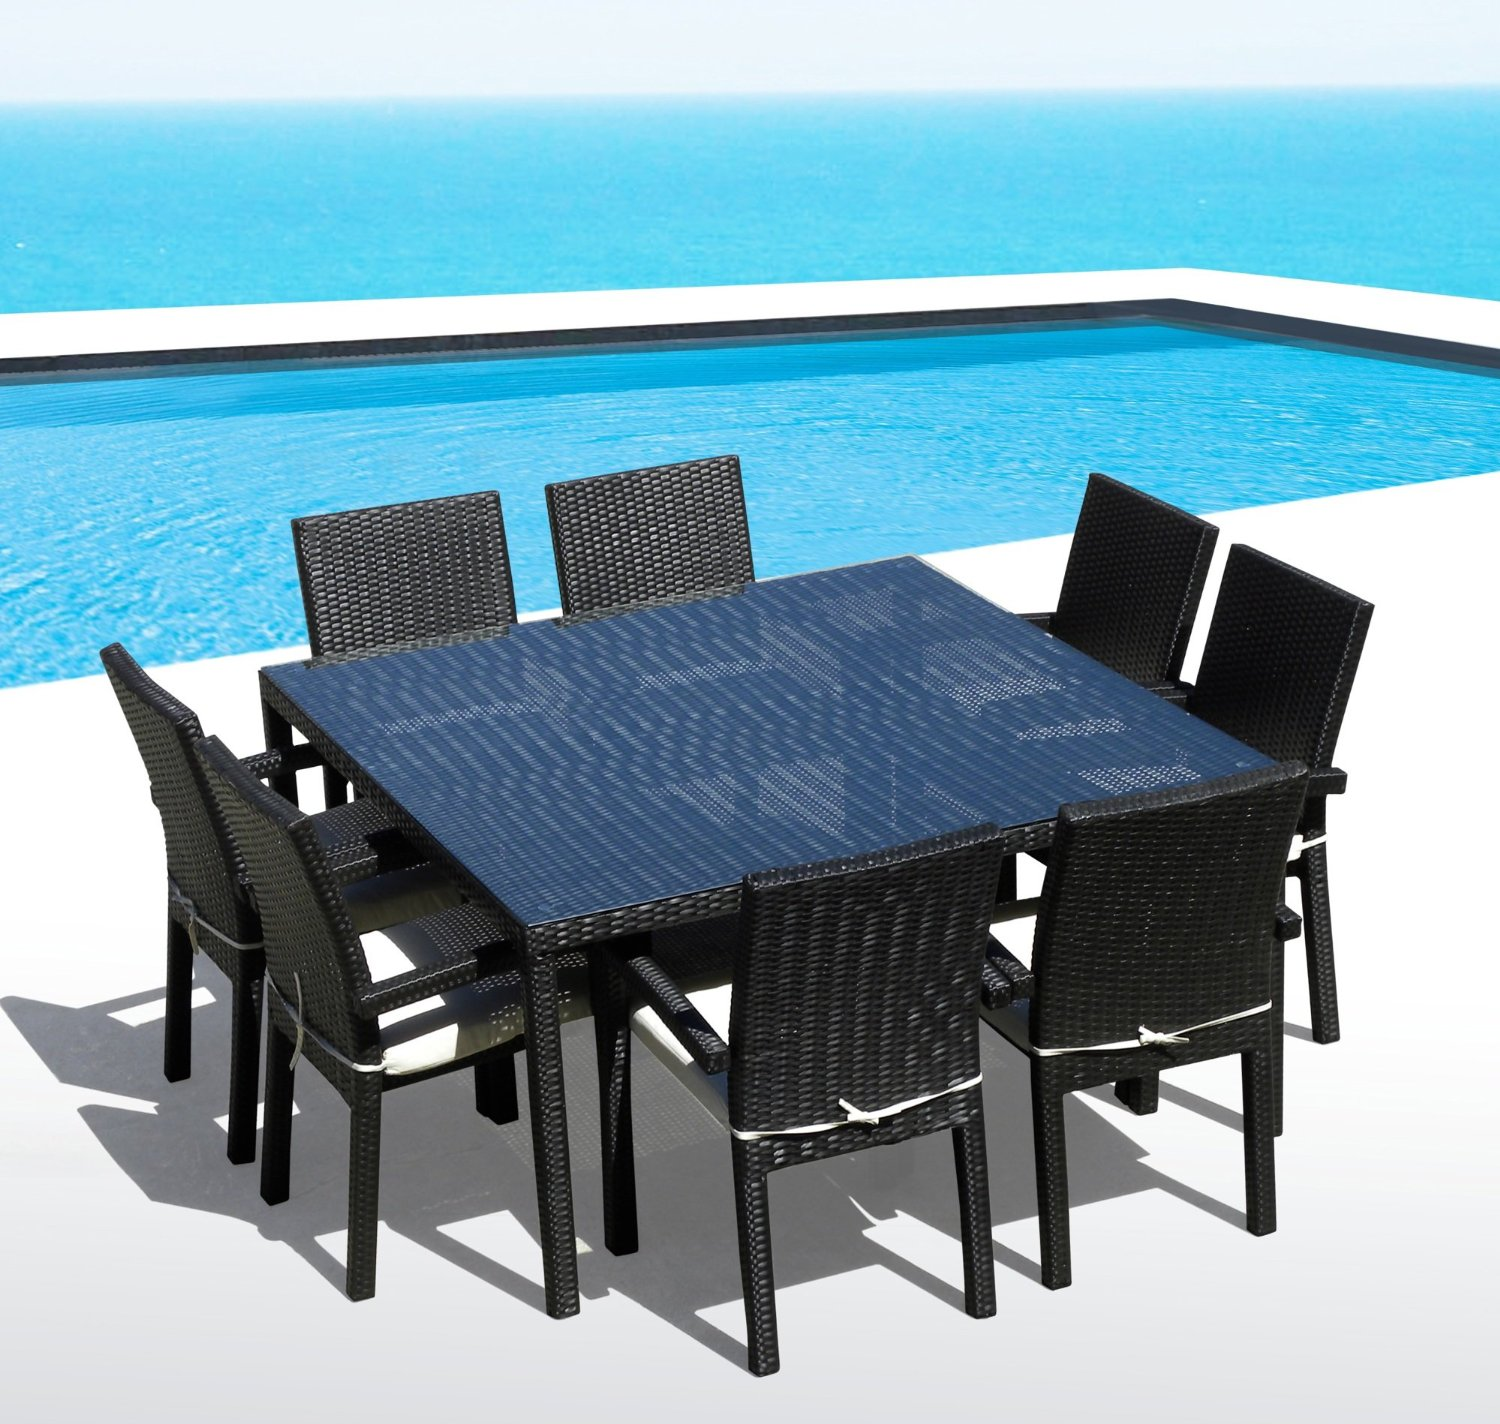 Outdoor Patio 9PC Dining Set